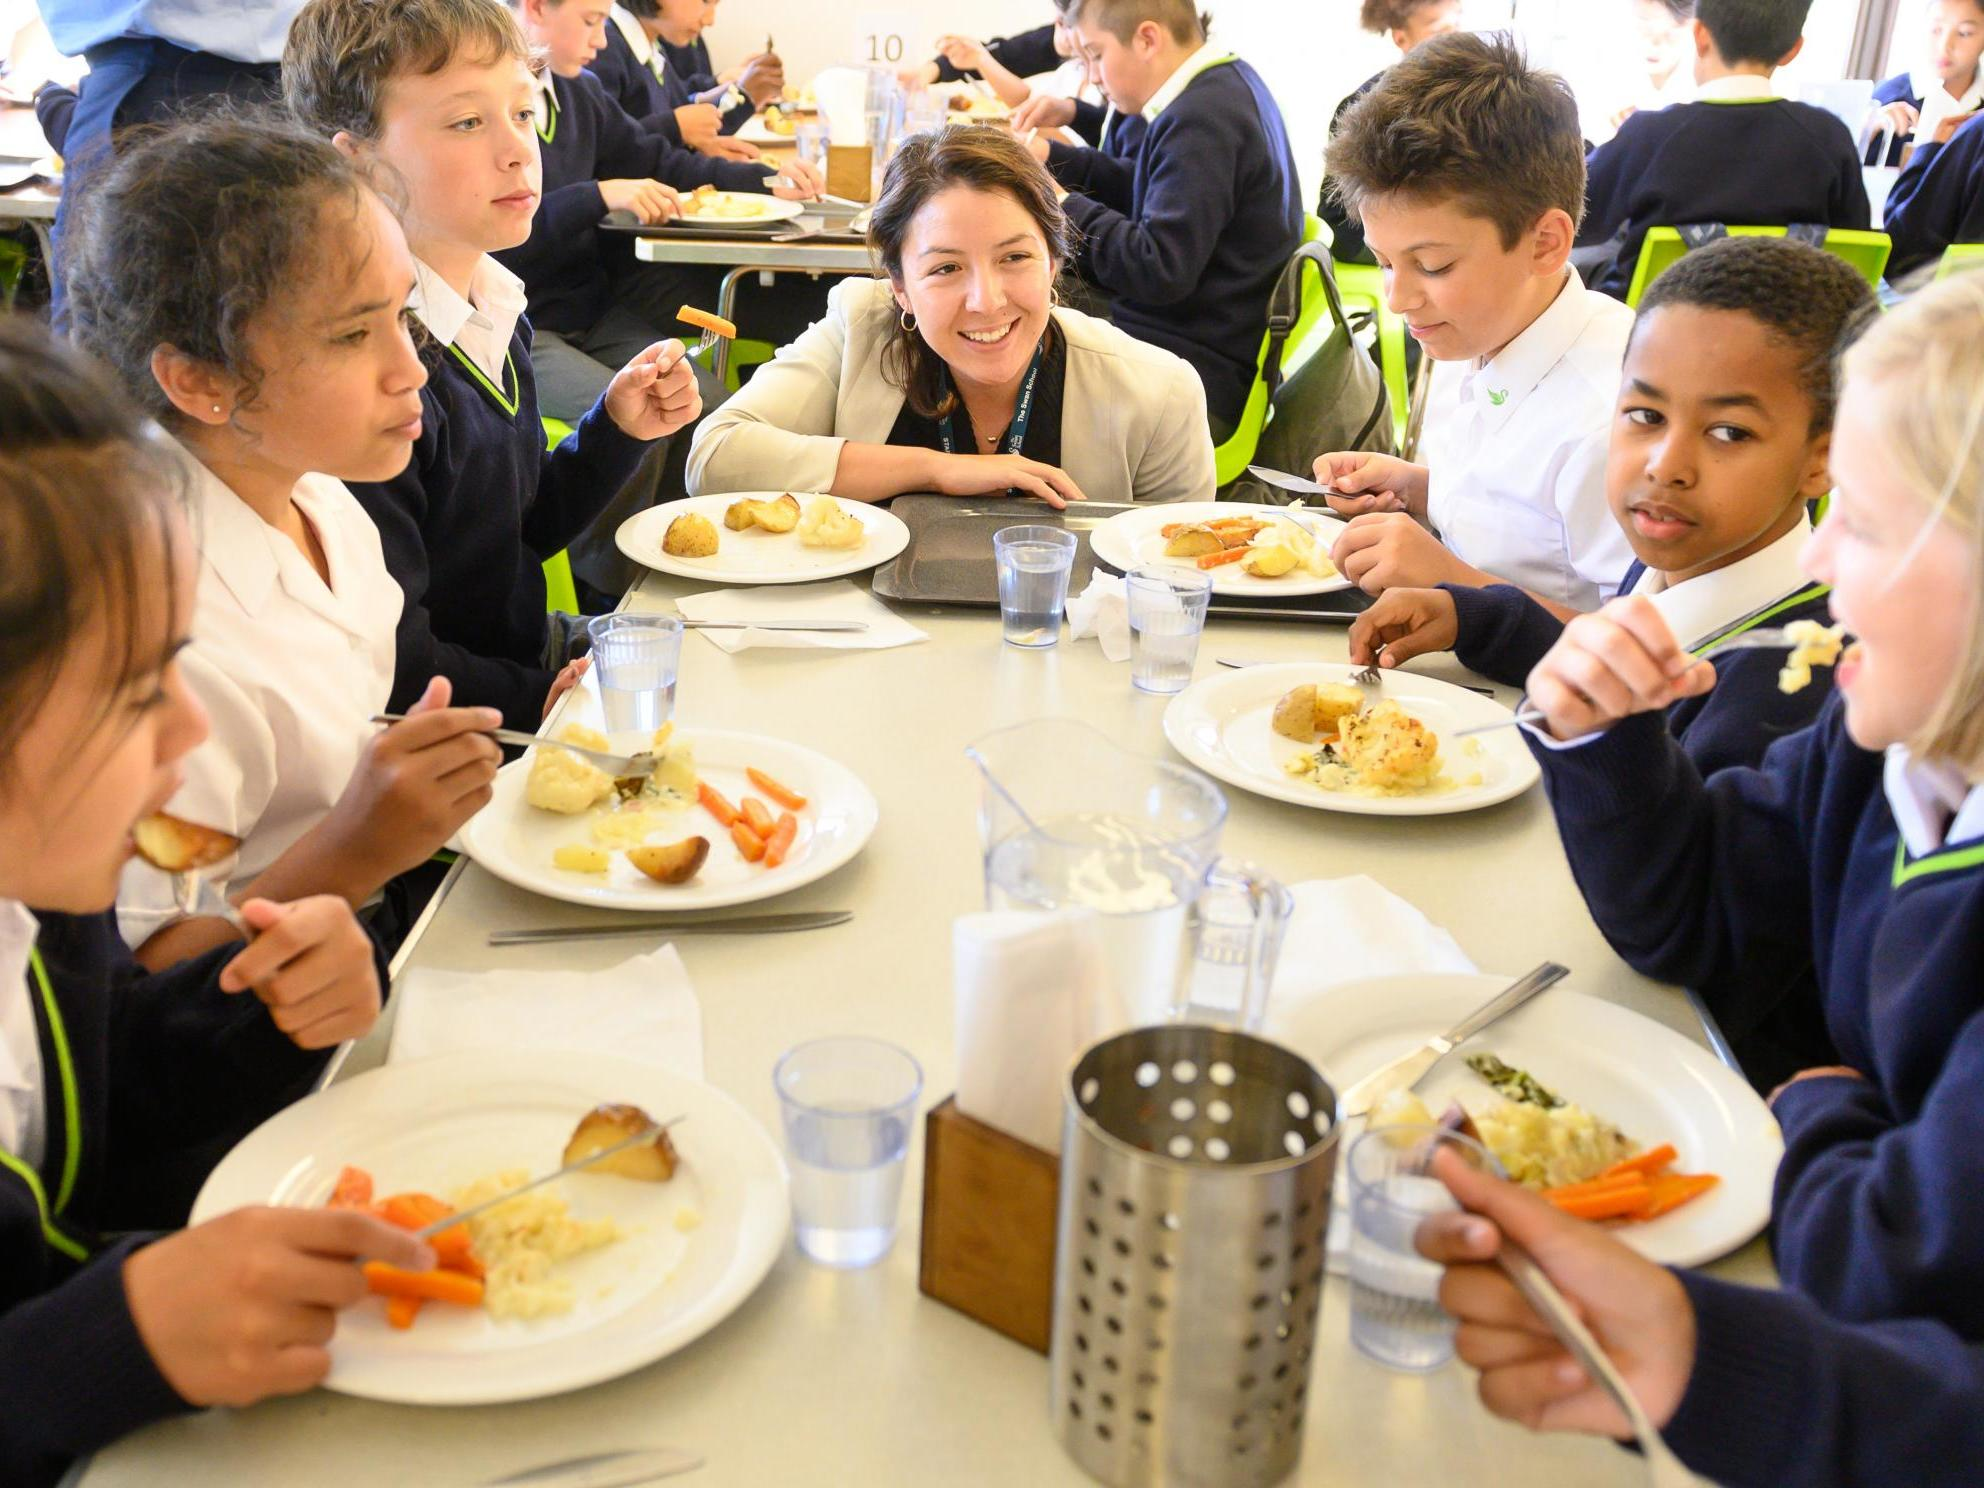 Schools offering vegetarian-only lunches forced to make changes after backlash